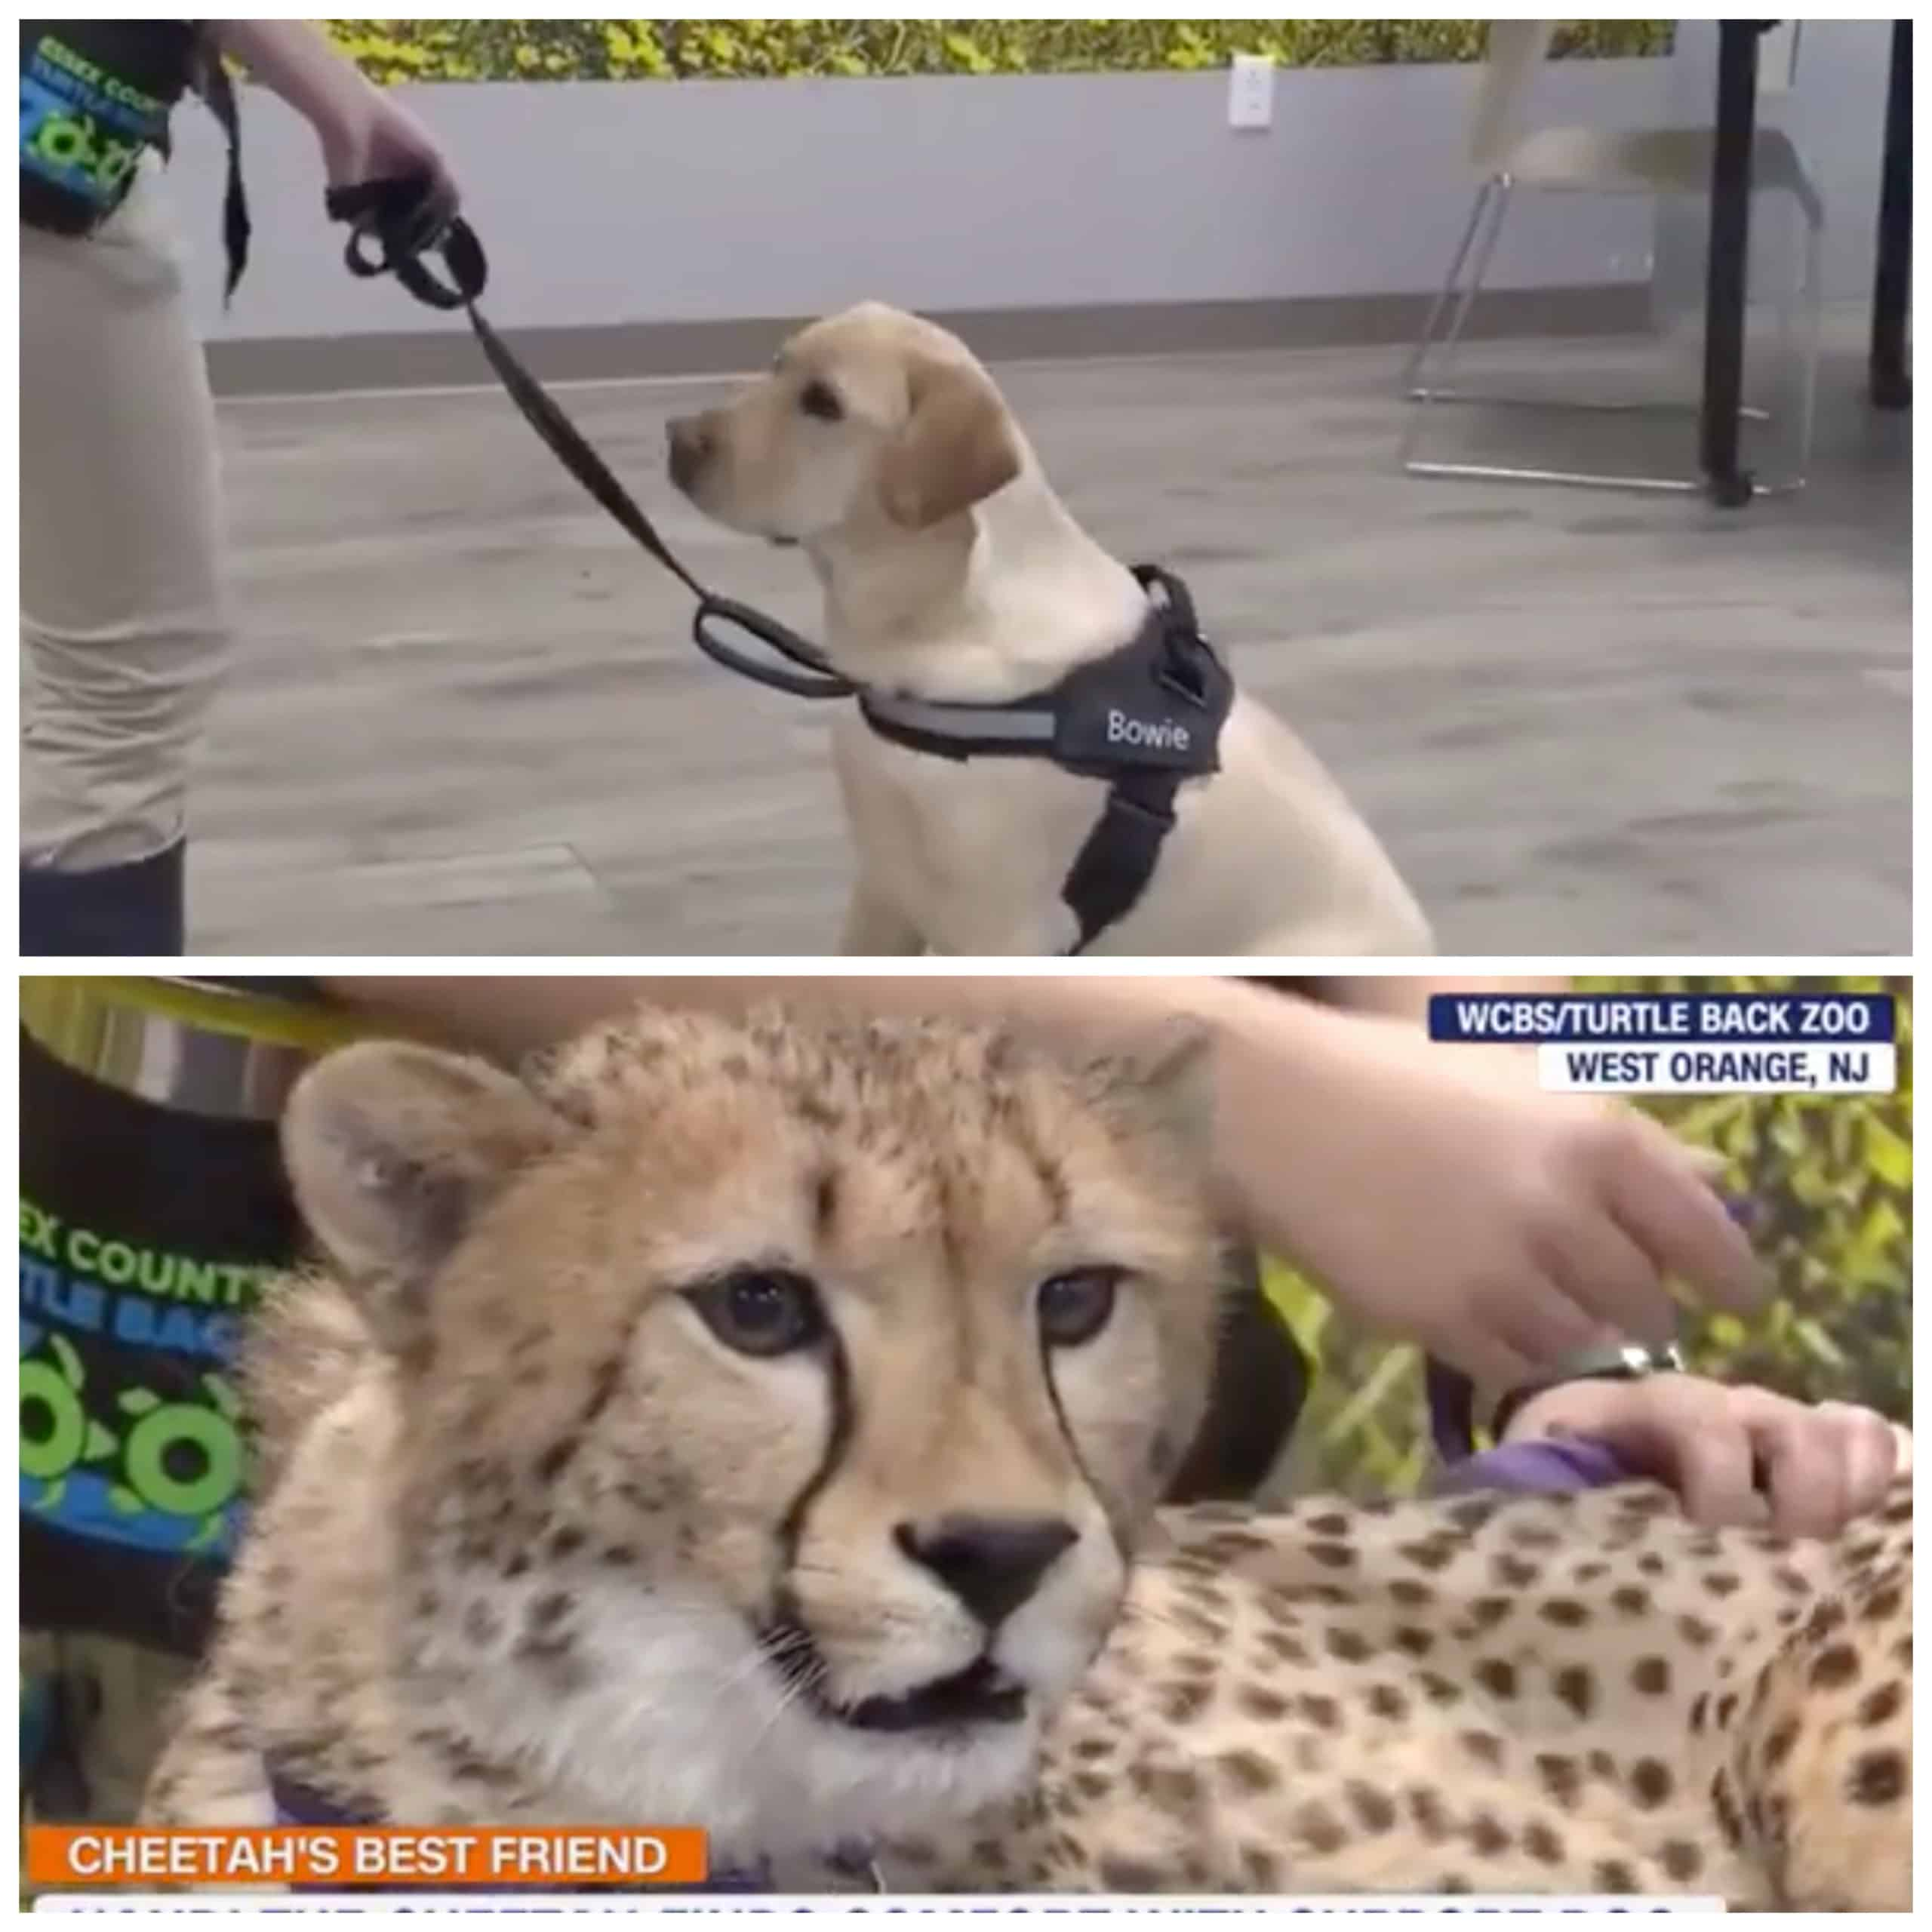 A Cheetah From a Zoo in New Jersey Has a Golden Retriever Pet! |